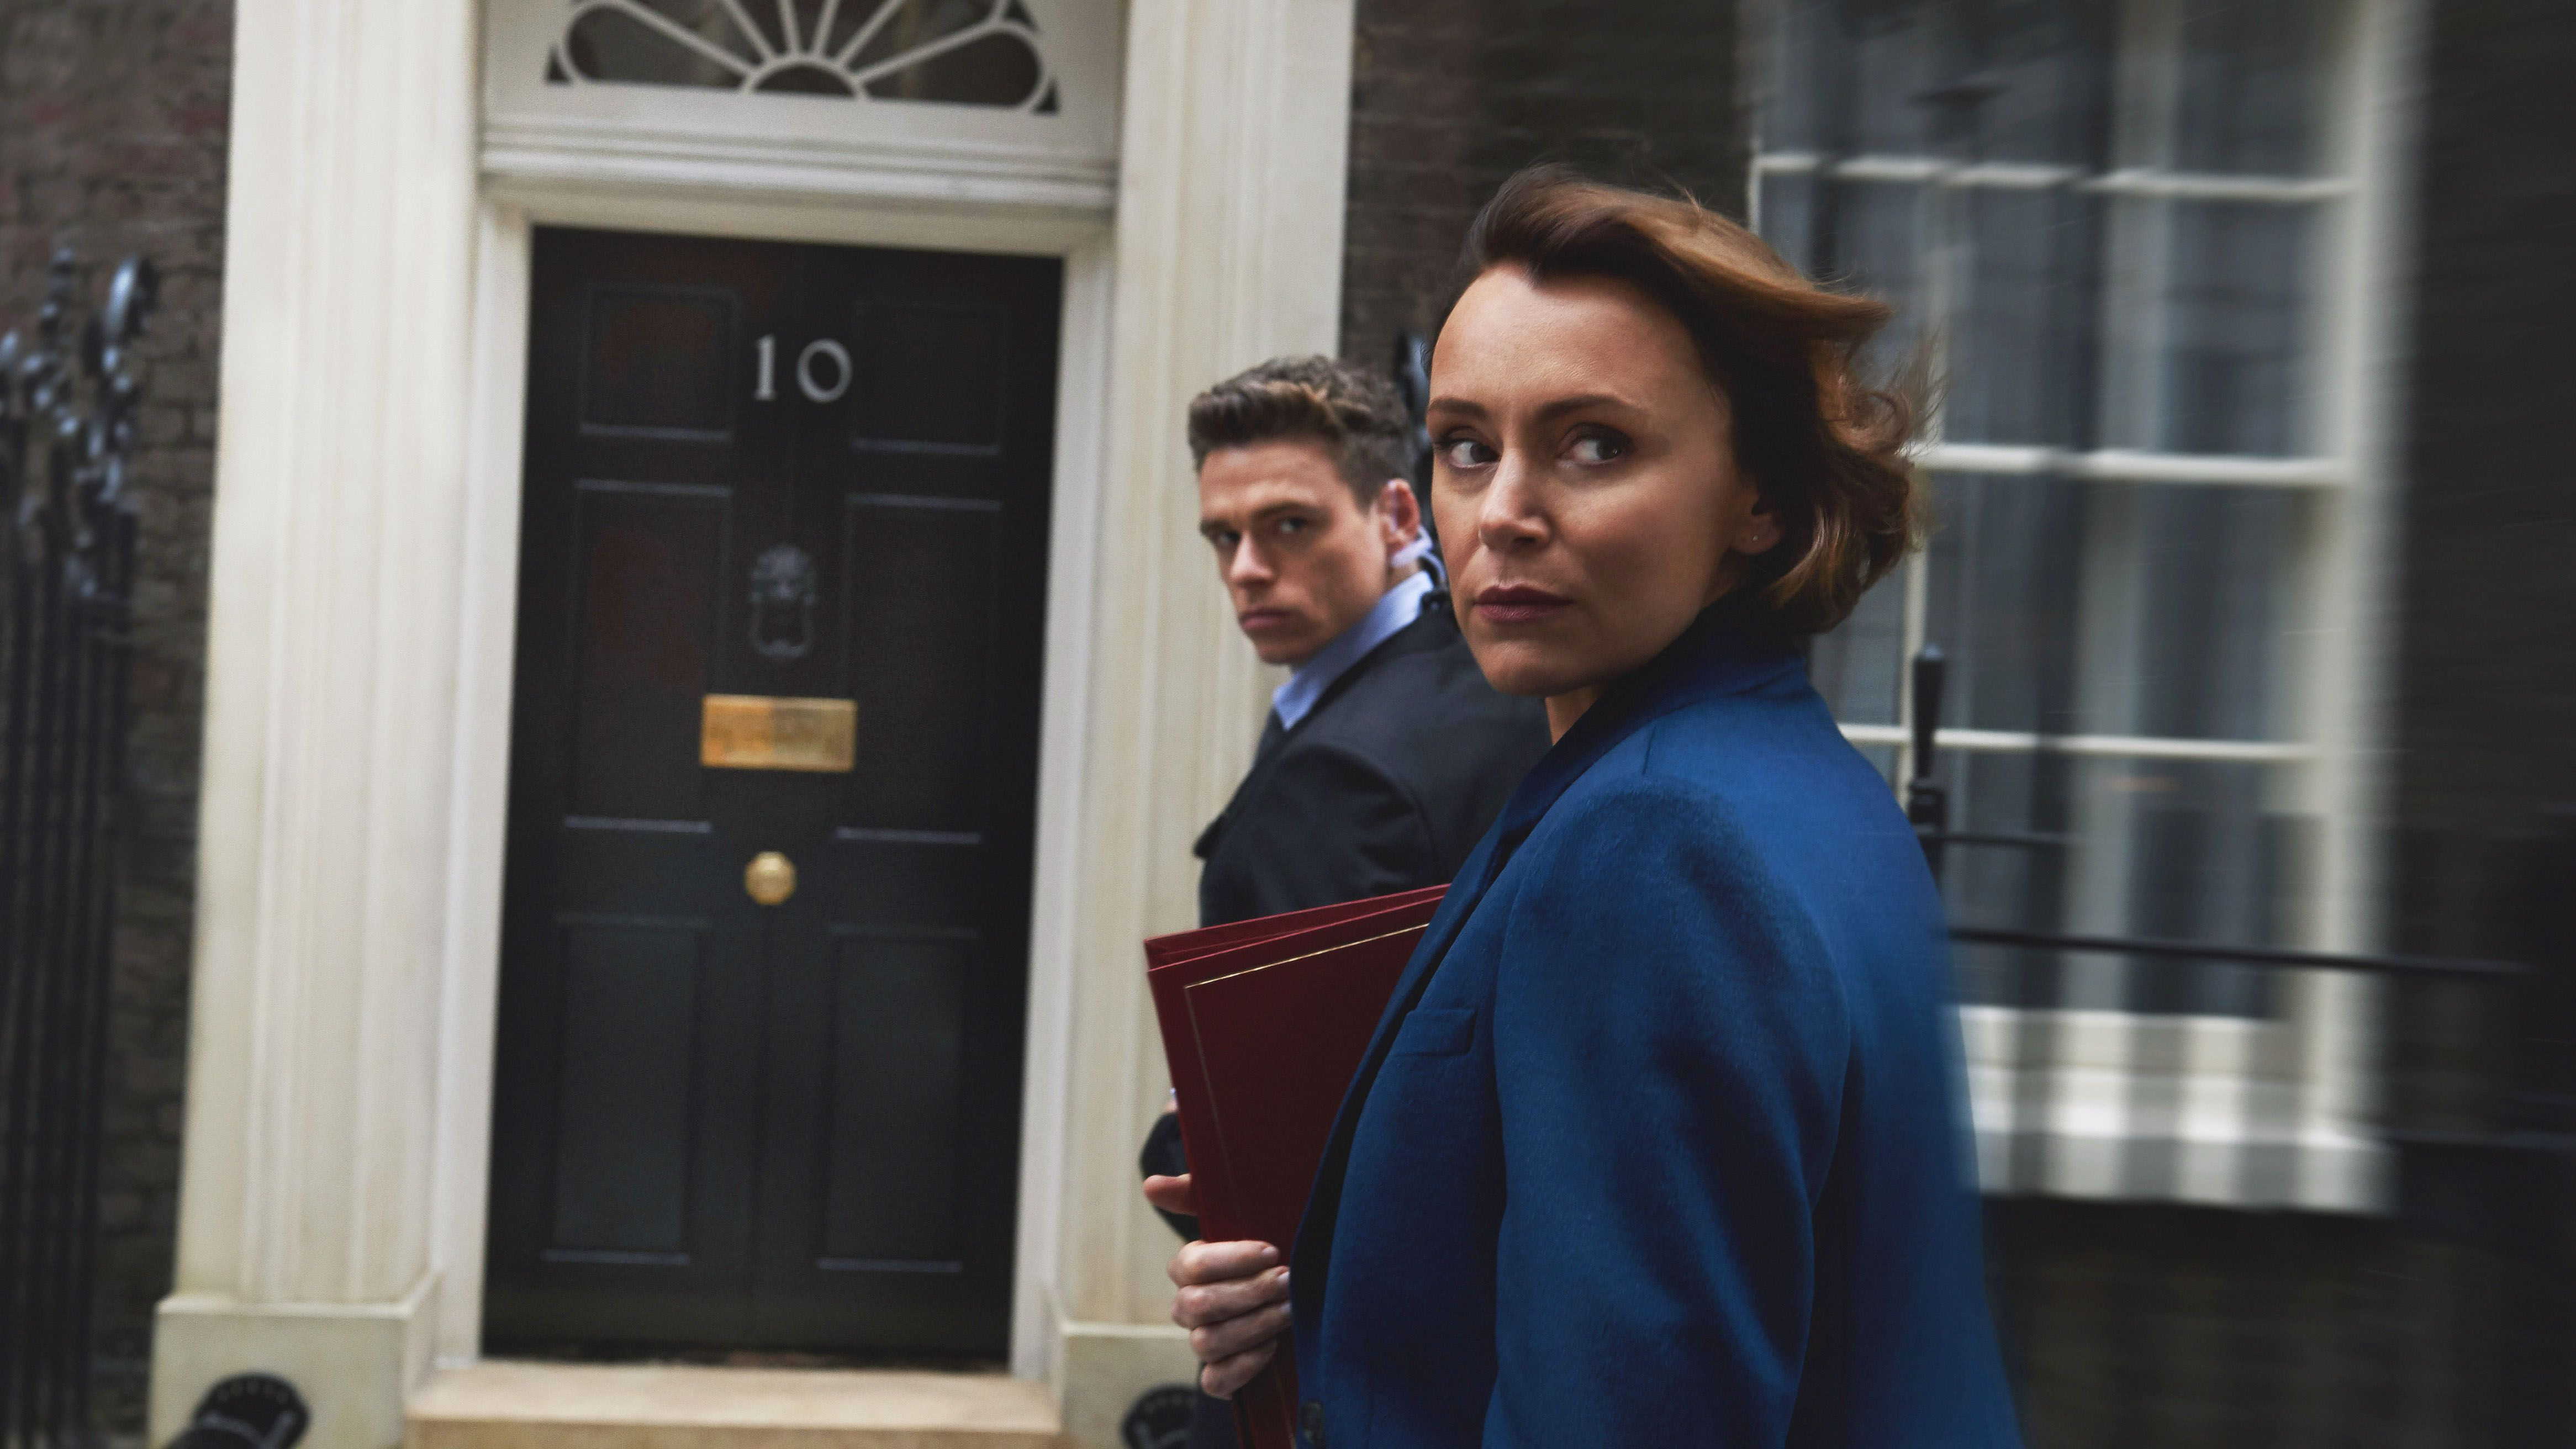 Bodyguard Season 2 Release Date, Cast News, Rumors and Predictions